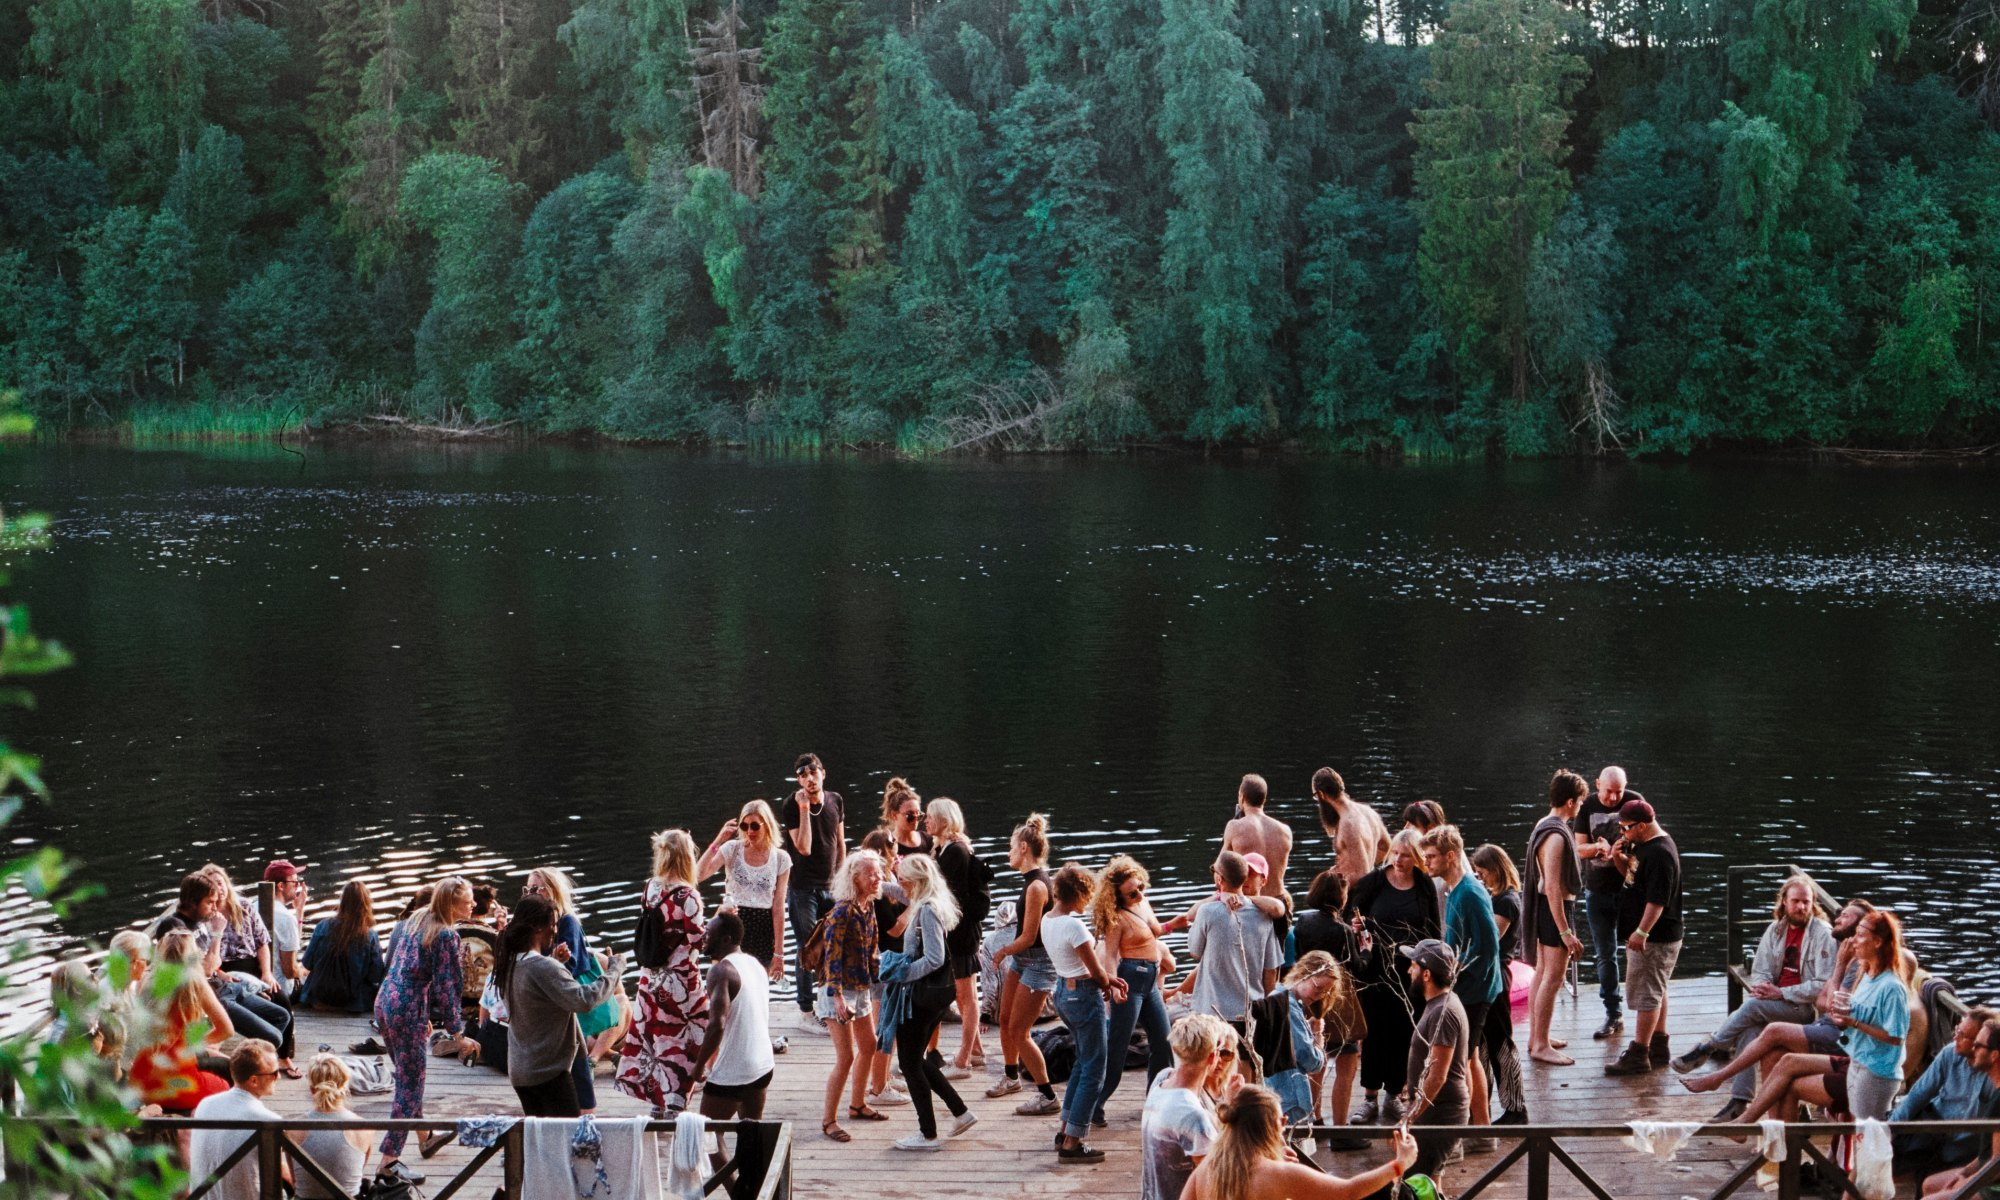 People socializing beside lake and forest